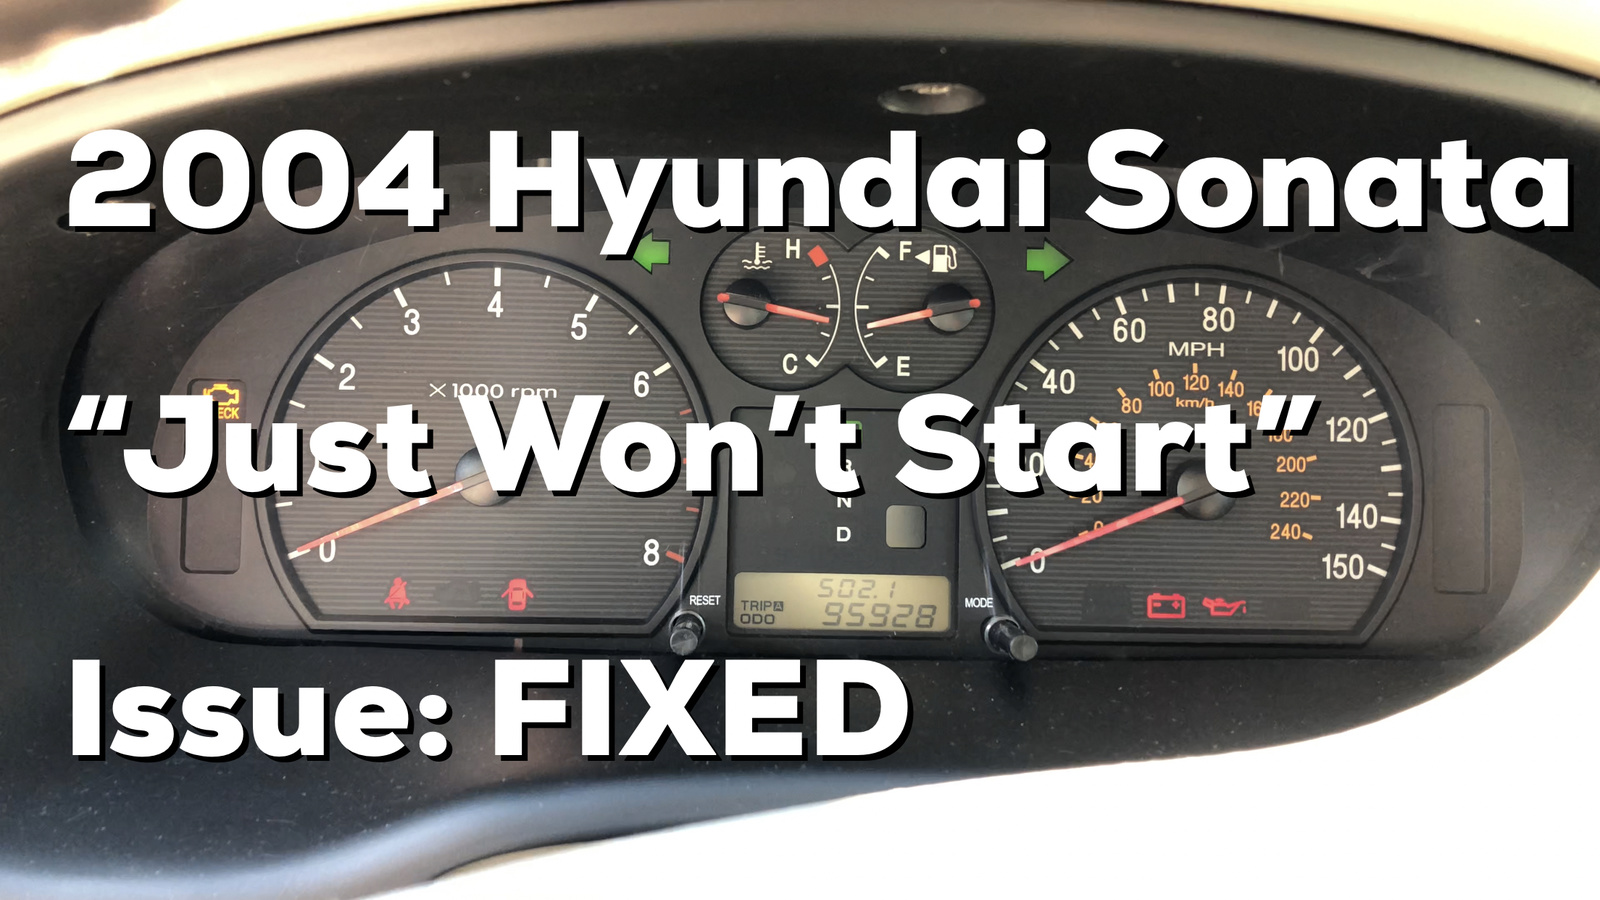 hight resolution of  hyundai sonata intermittent start issue https youtu be muqrstexico if the link to the video doesn t work search for user nperspective on youtube and